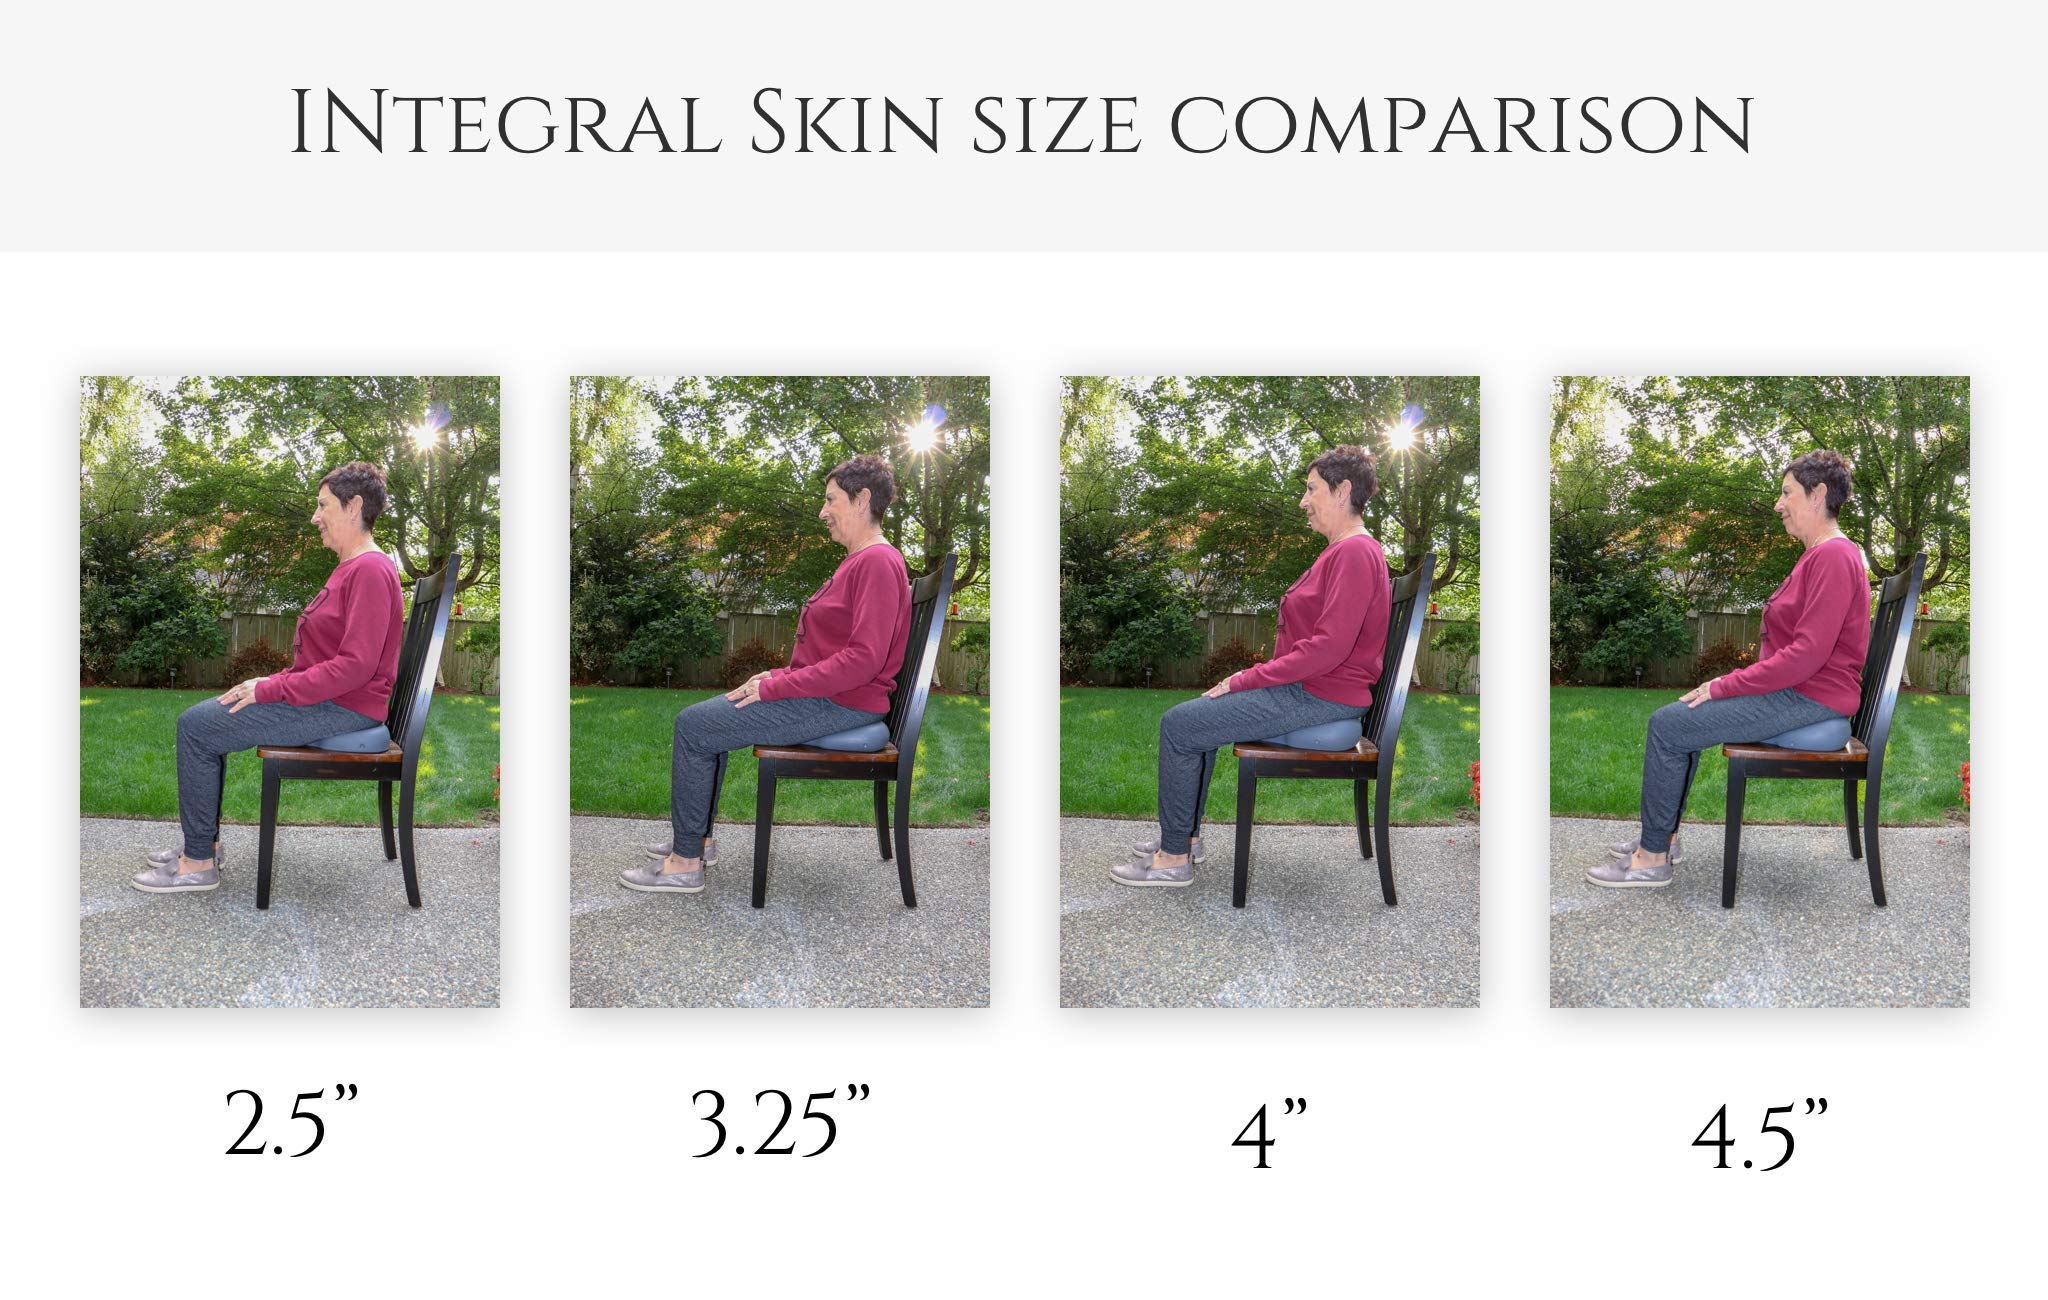 SITTS Posture Cushion Memorial Day Special 3.45'' Original Foam Wedge Cushion, Hamstring Pressures Reduced and Sciatica Relief with Easy Posture in Office Seat Cushion, Commute. Feel Alignment Ease.